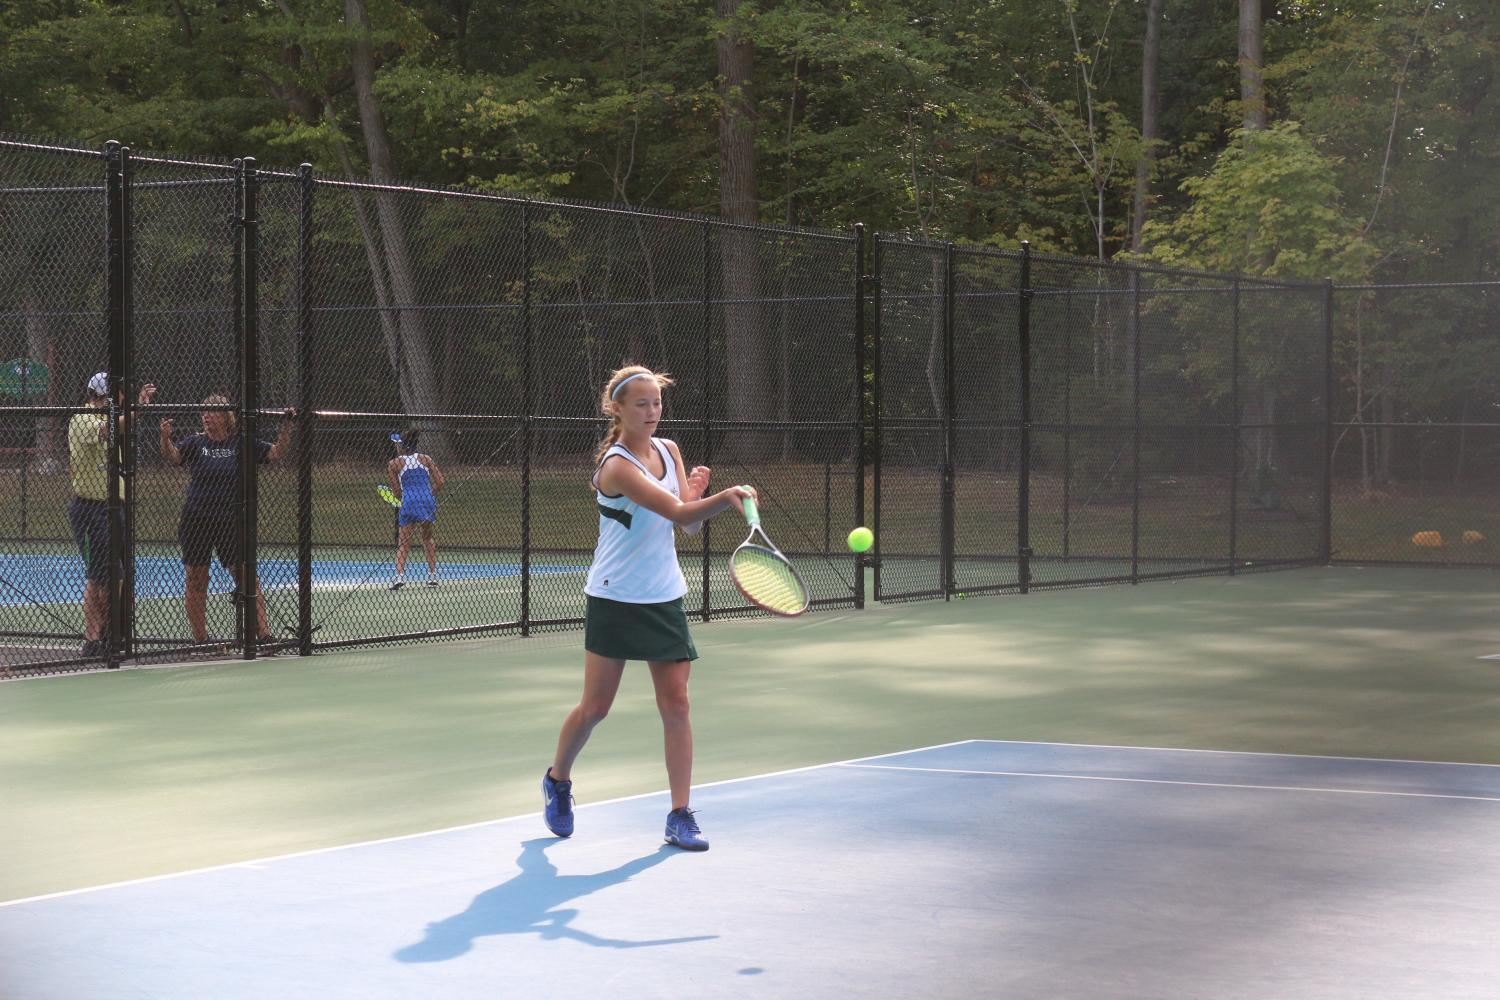 Melanie+Brentnall+hits+a+forehand.+Brentnall+is+among+the+returning+players+for+Pascack+Valley%2C+who+finished+4-12+this+season.+